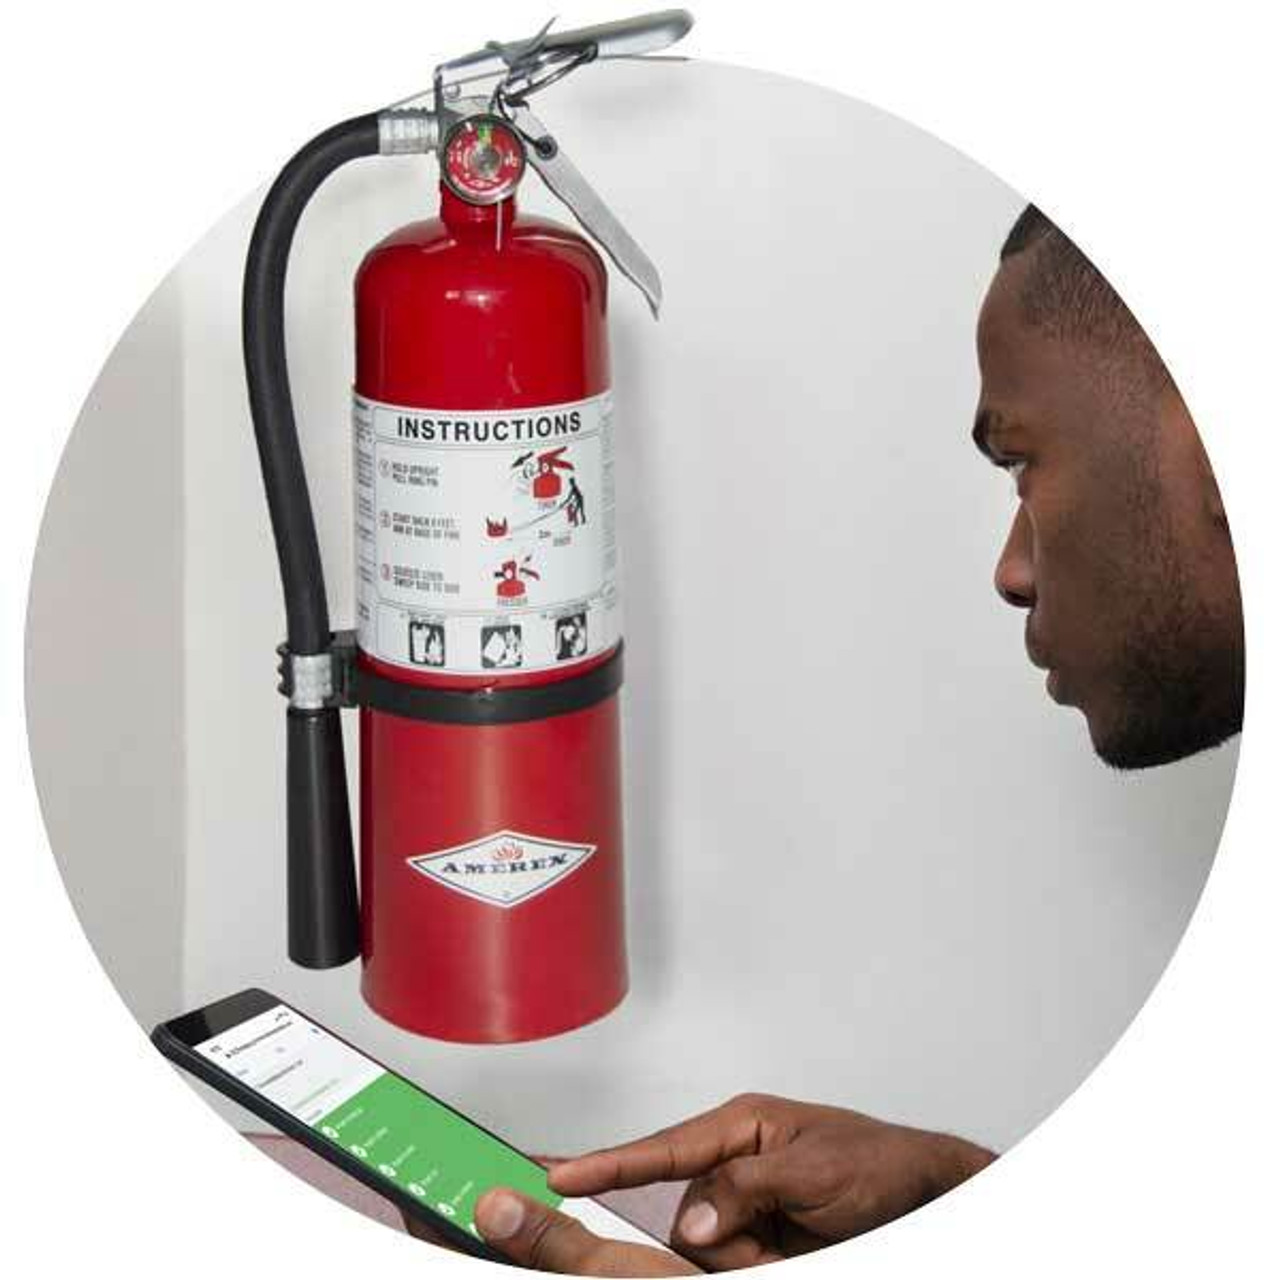 Fire Protection Equipment & Signs